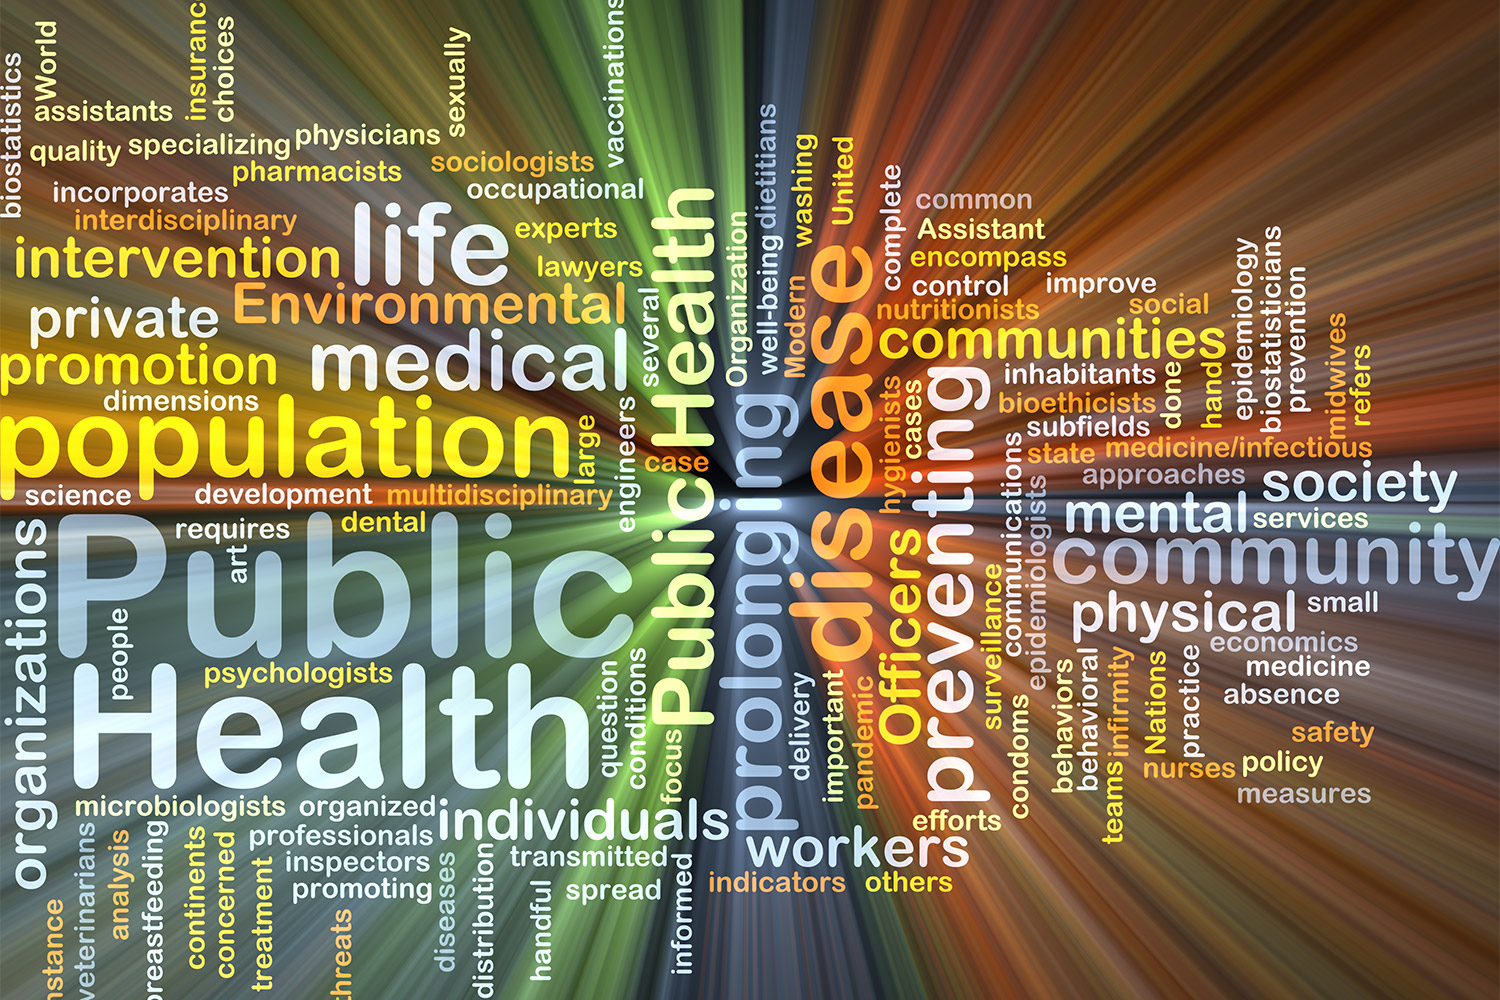 PHIRN | NCPHWR | National Centre for Population Health & Wellbeing Research